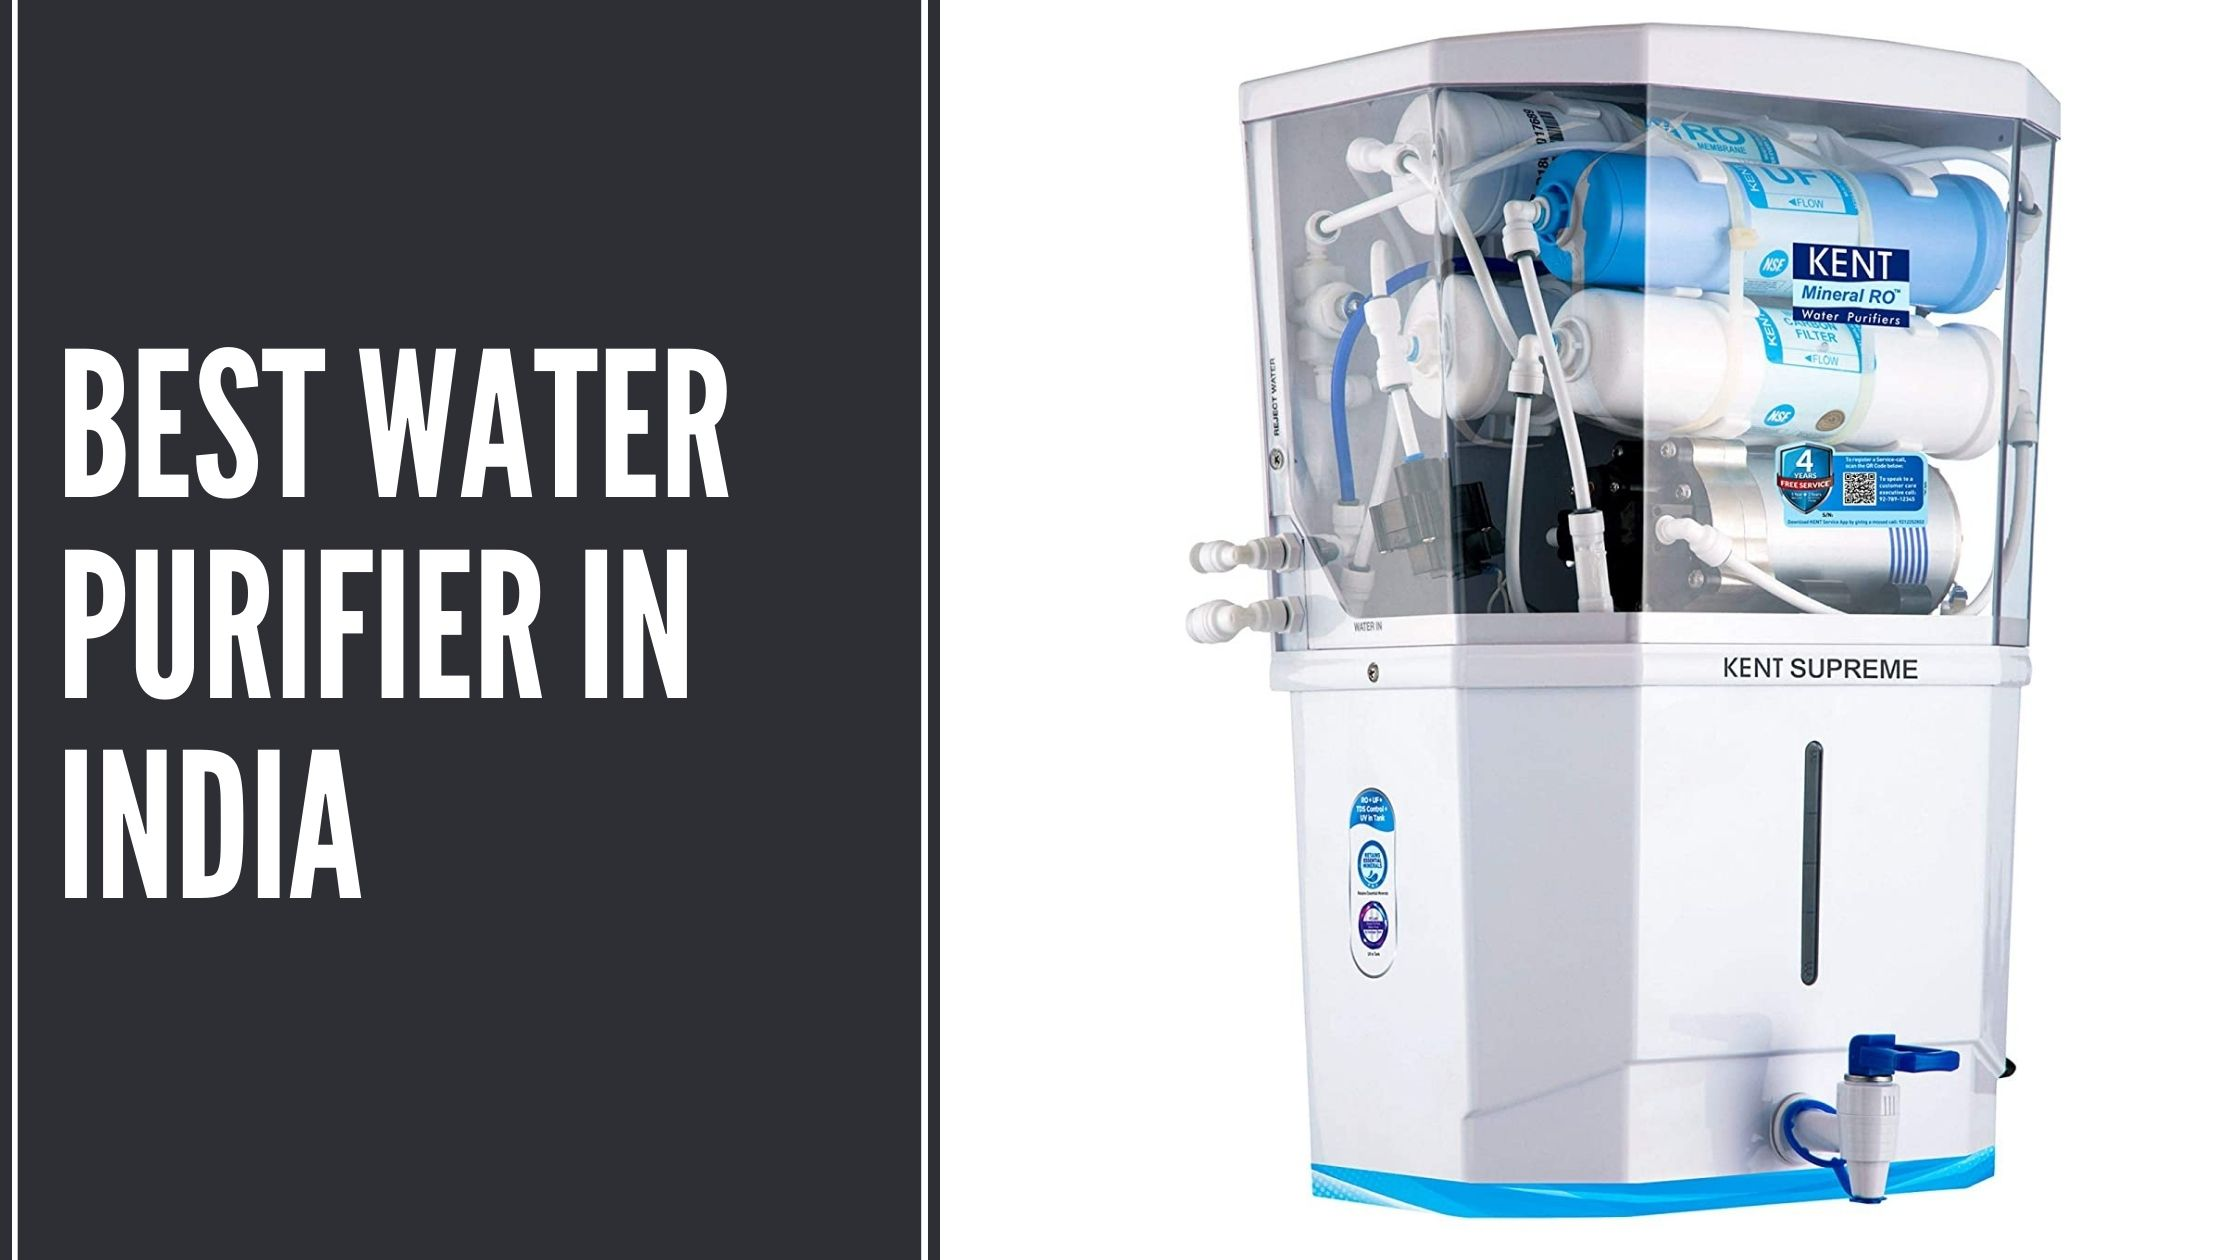 Best Water Purifier in India